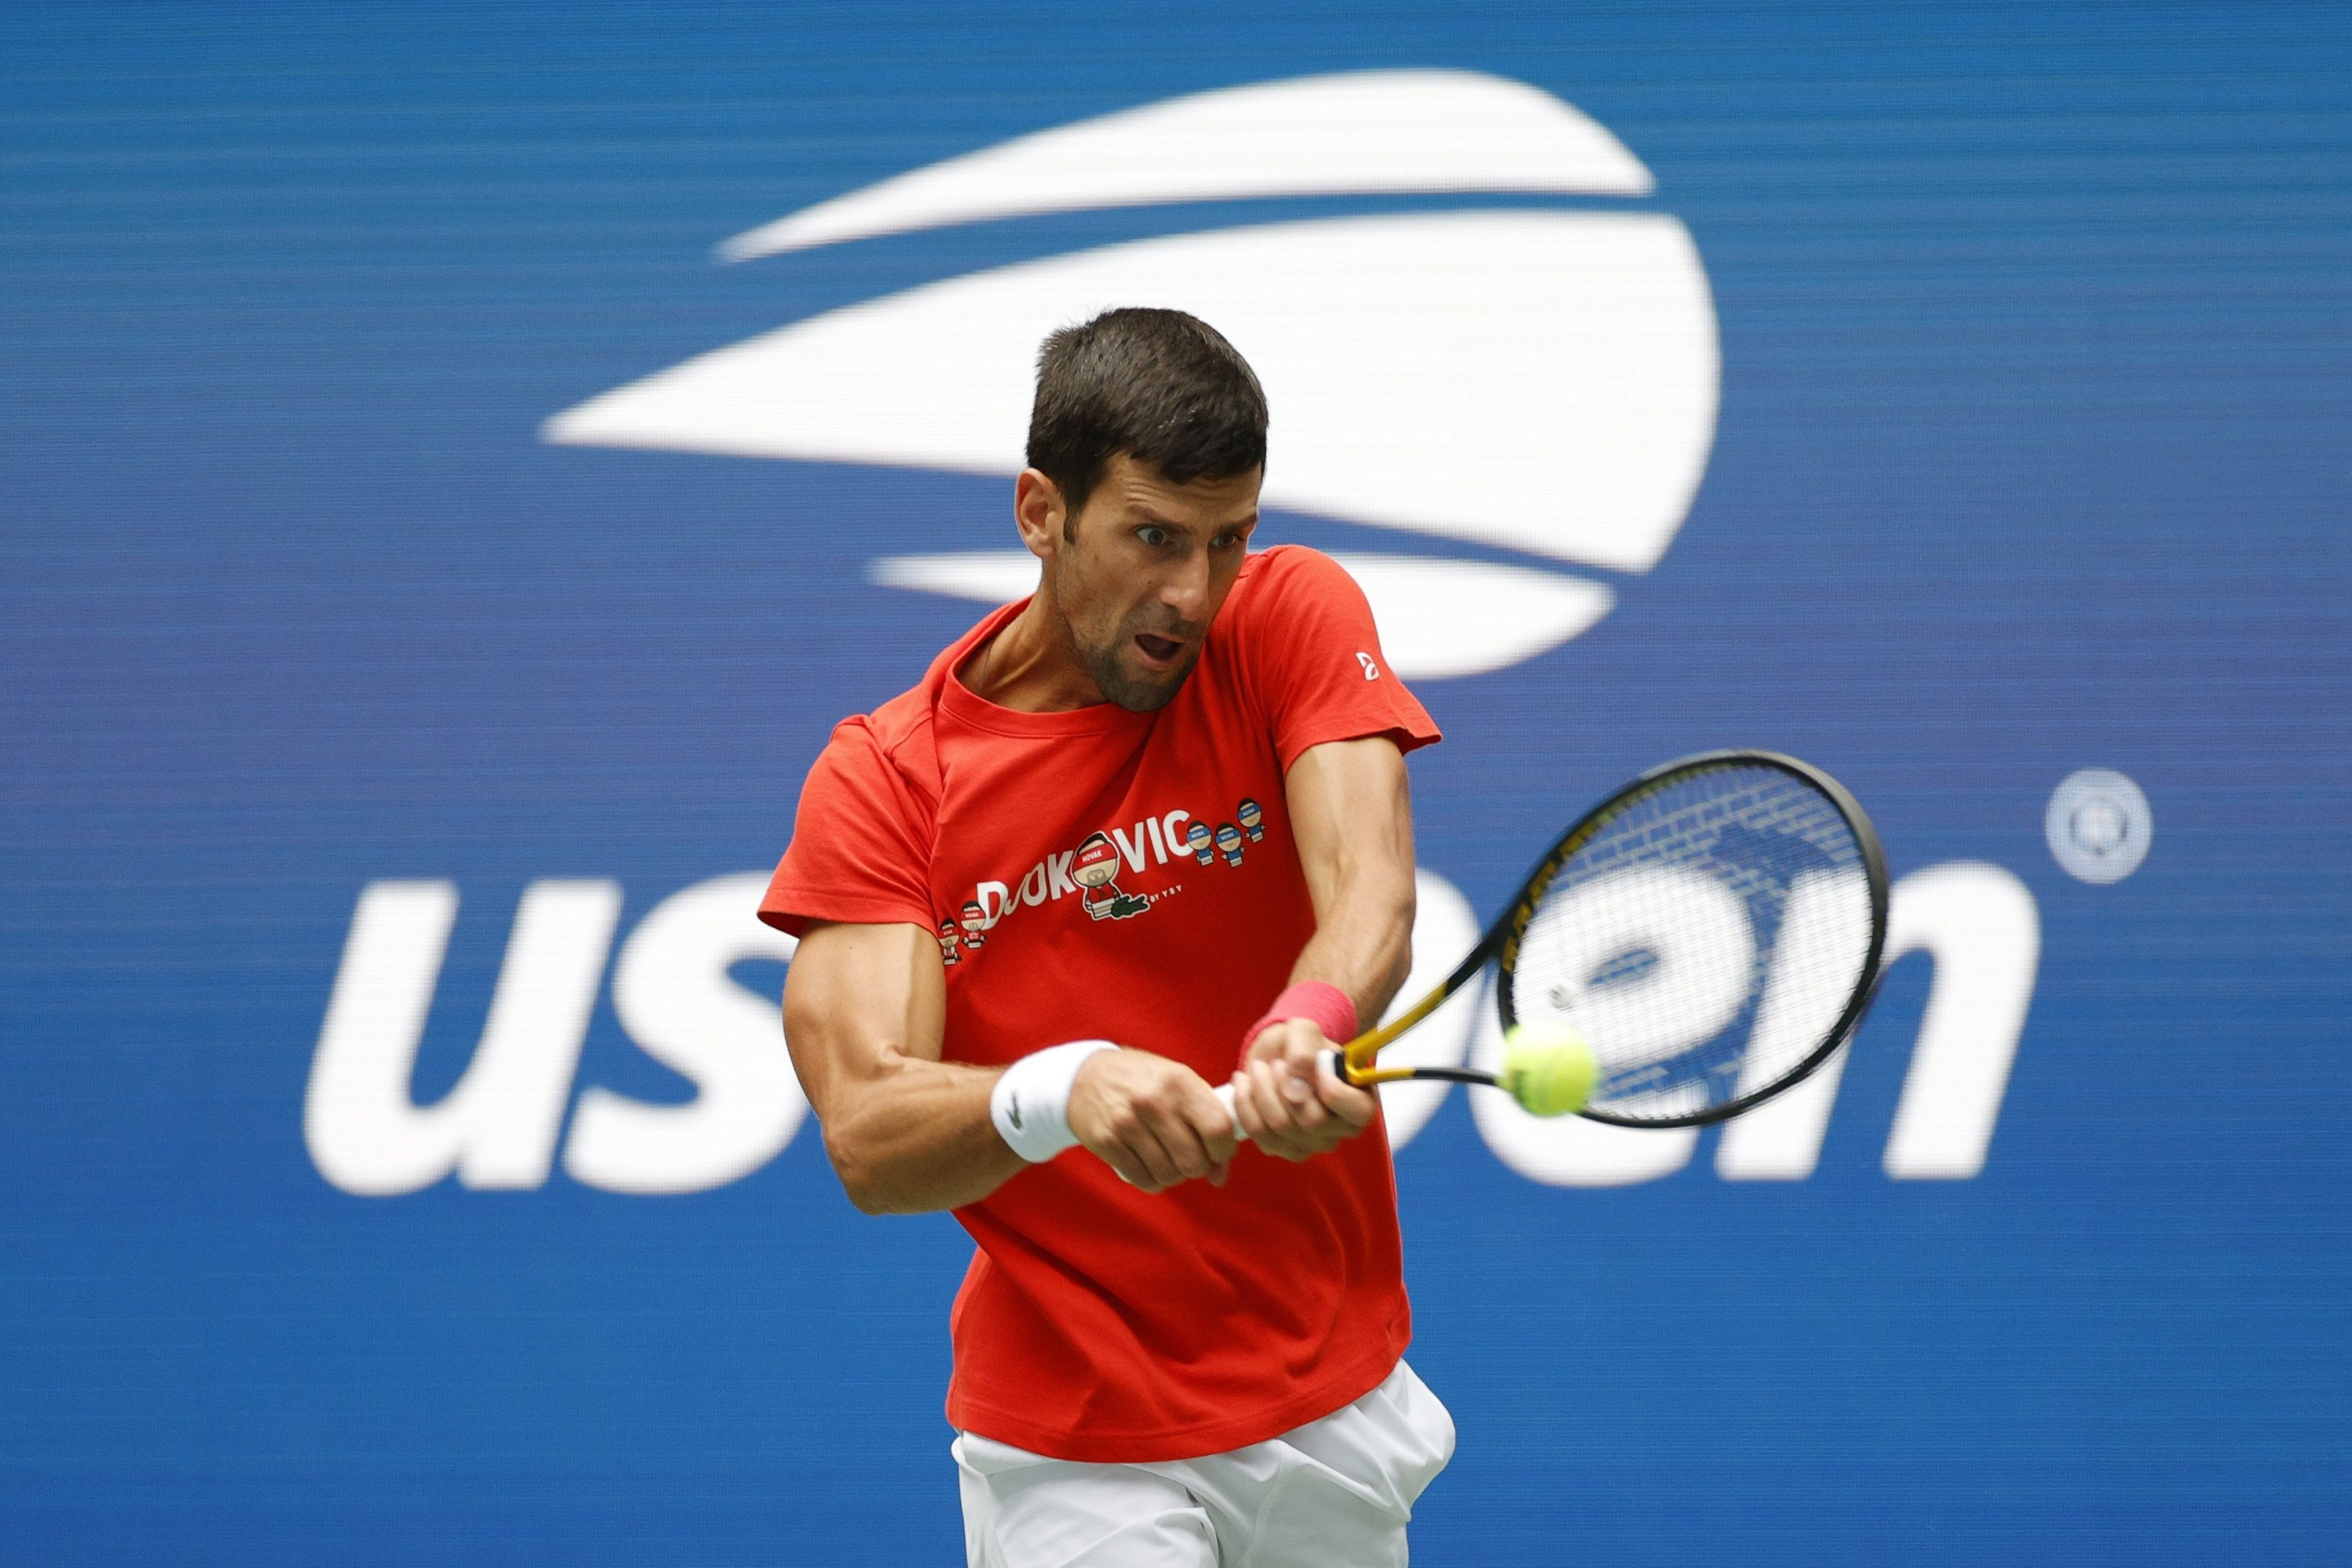 Serbia's Novak Djokovic returns the ball during a practice session ahead of the 2021 U.S. Open, New York, U.S., Aug. 28, 2021. (AFP Photo)